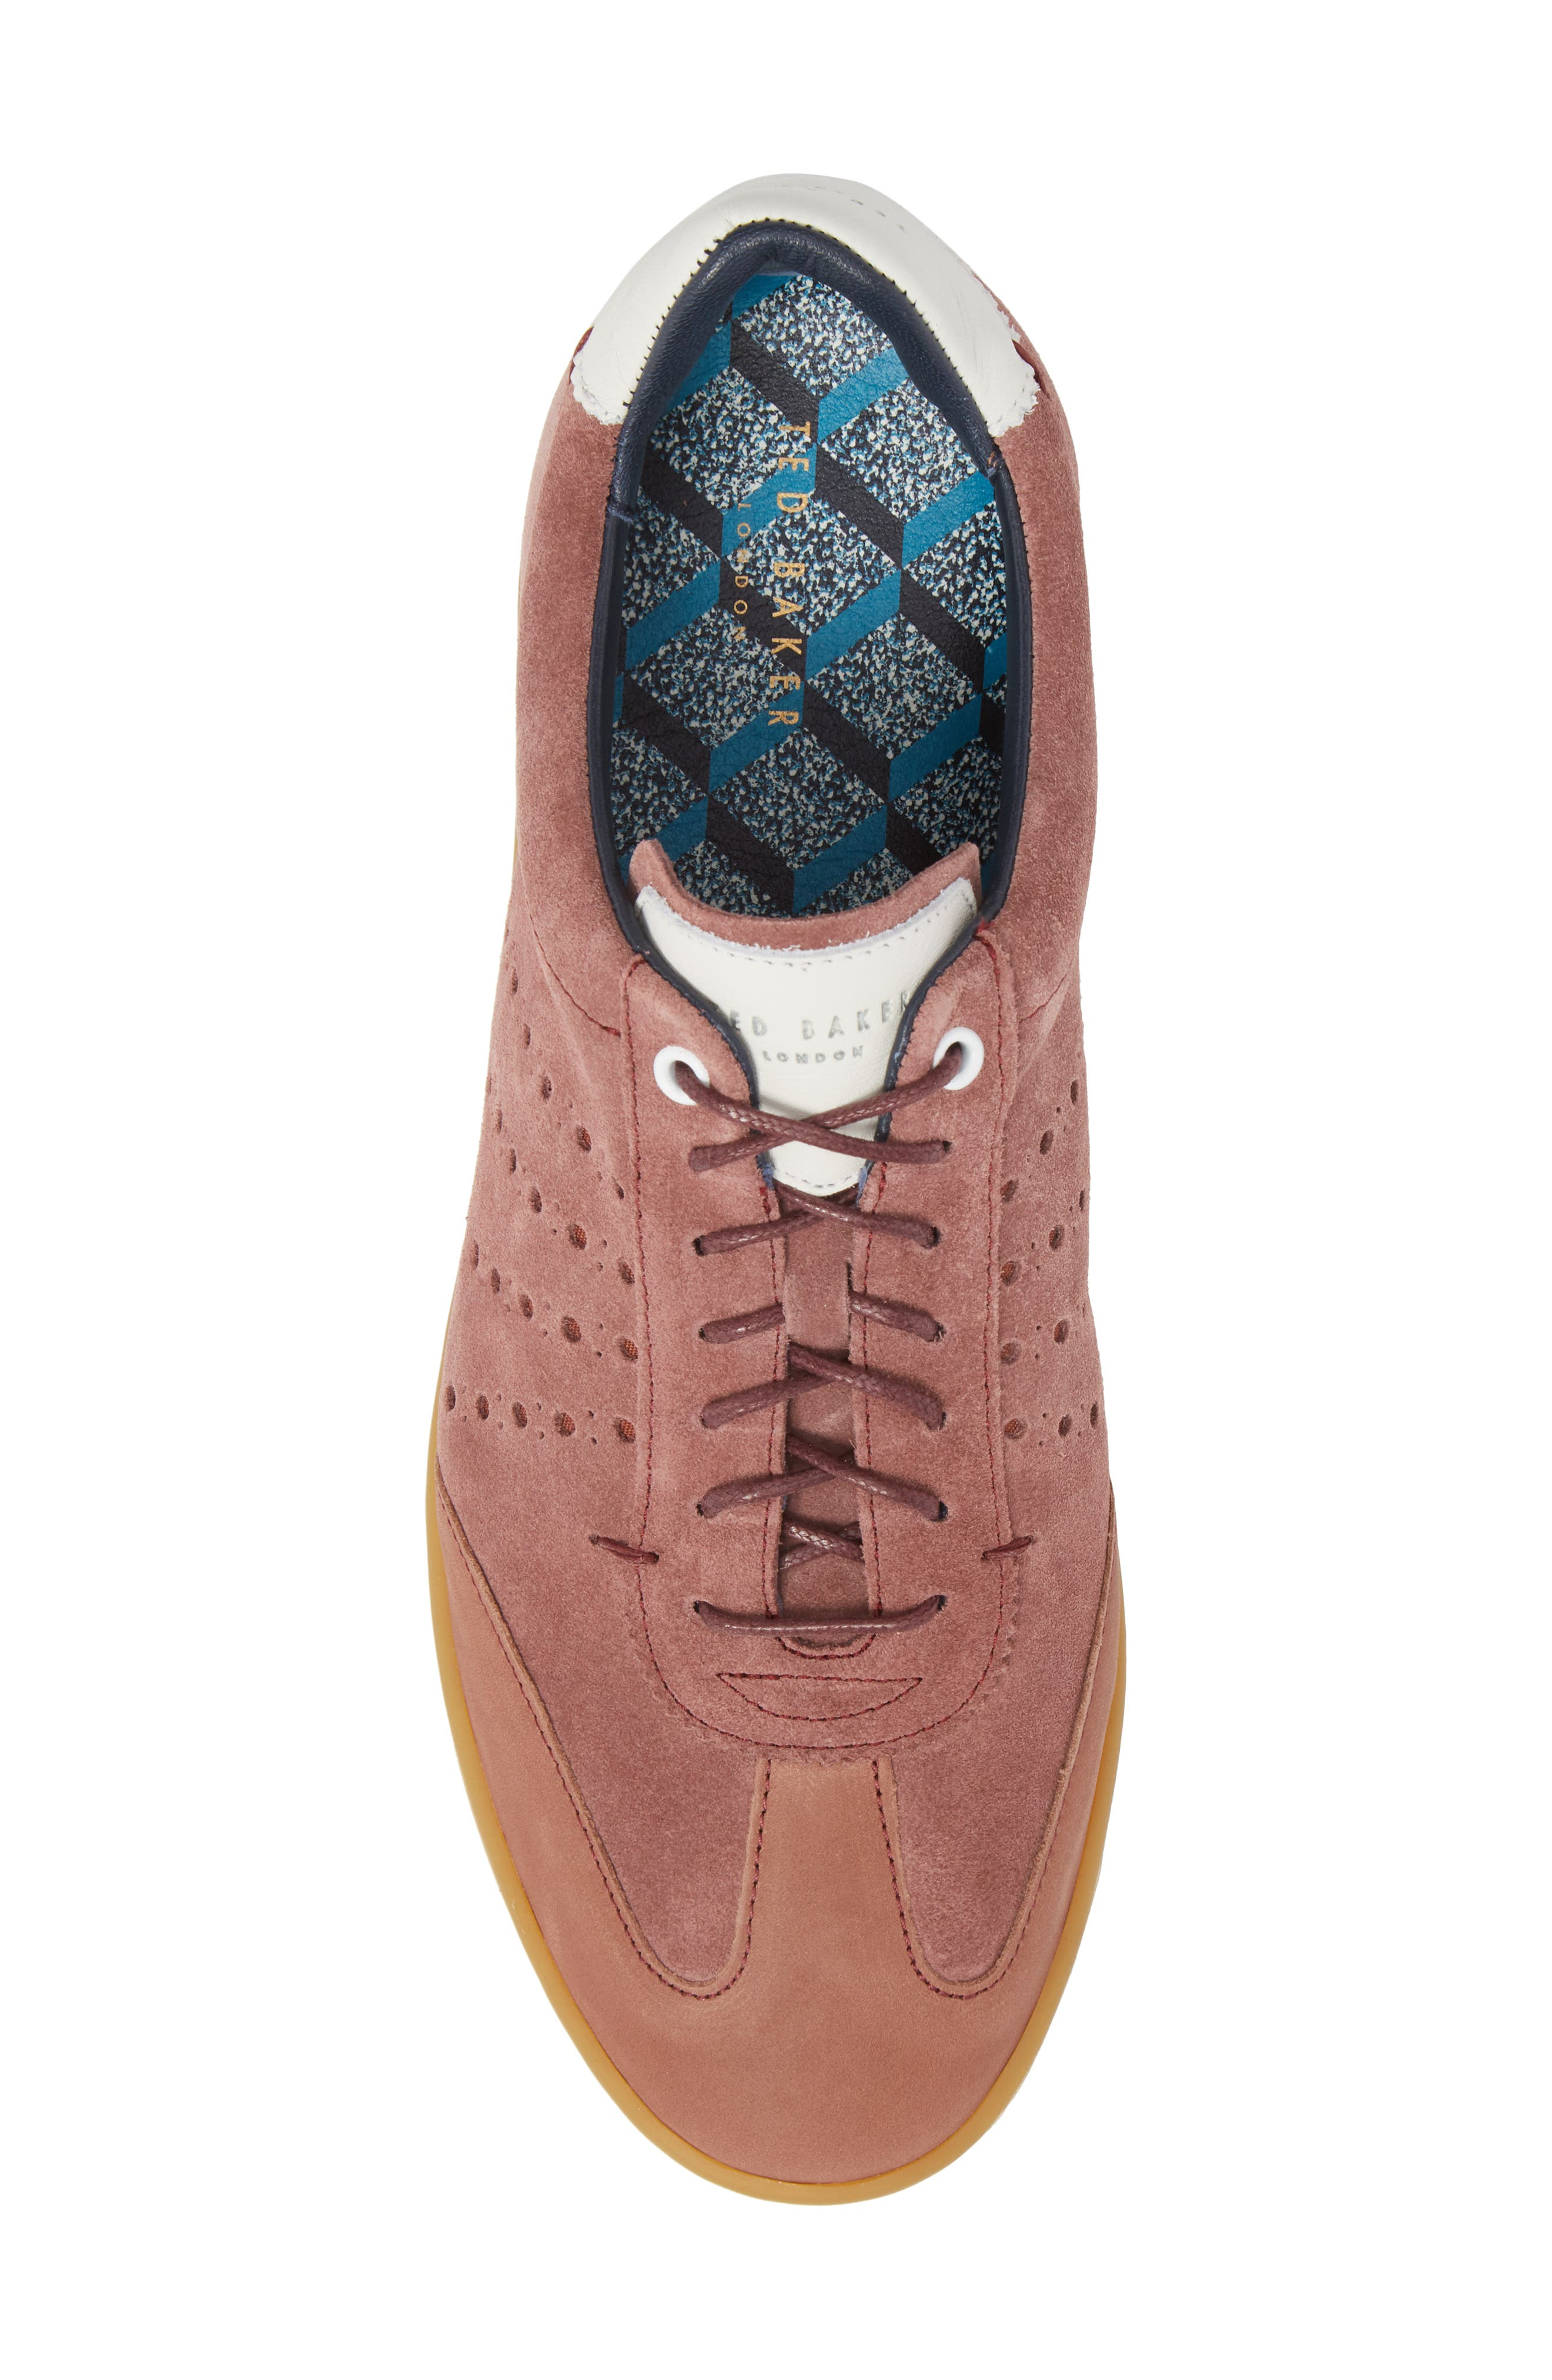 Orlees Low Top Sneaker,                             Alternate thumbnail 5, color,                             Pink Leather/ Suede